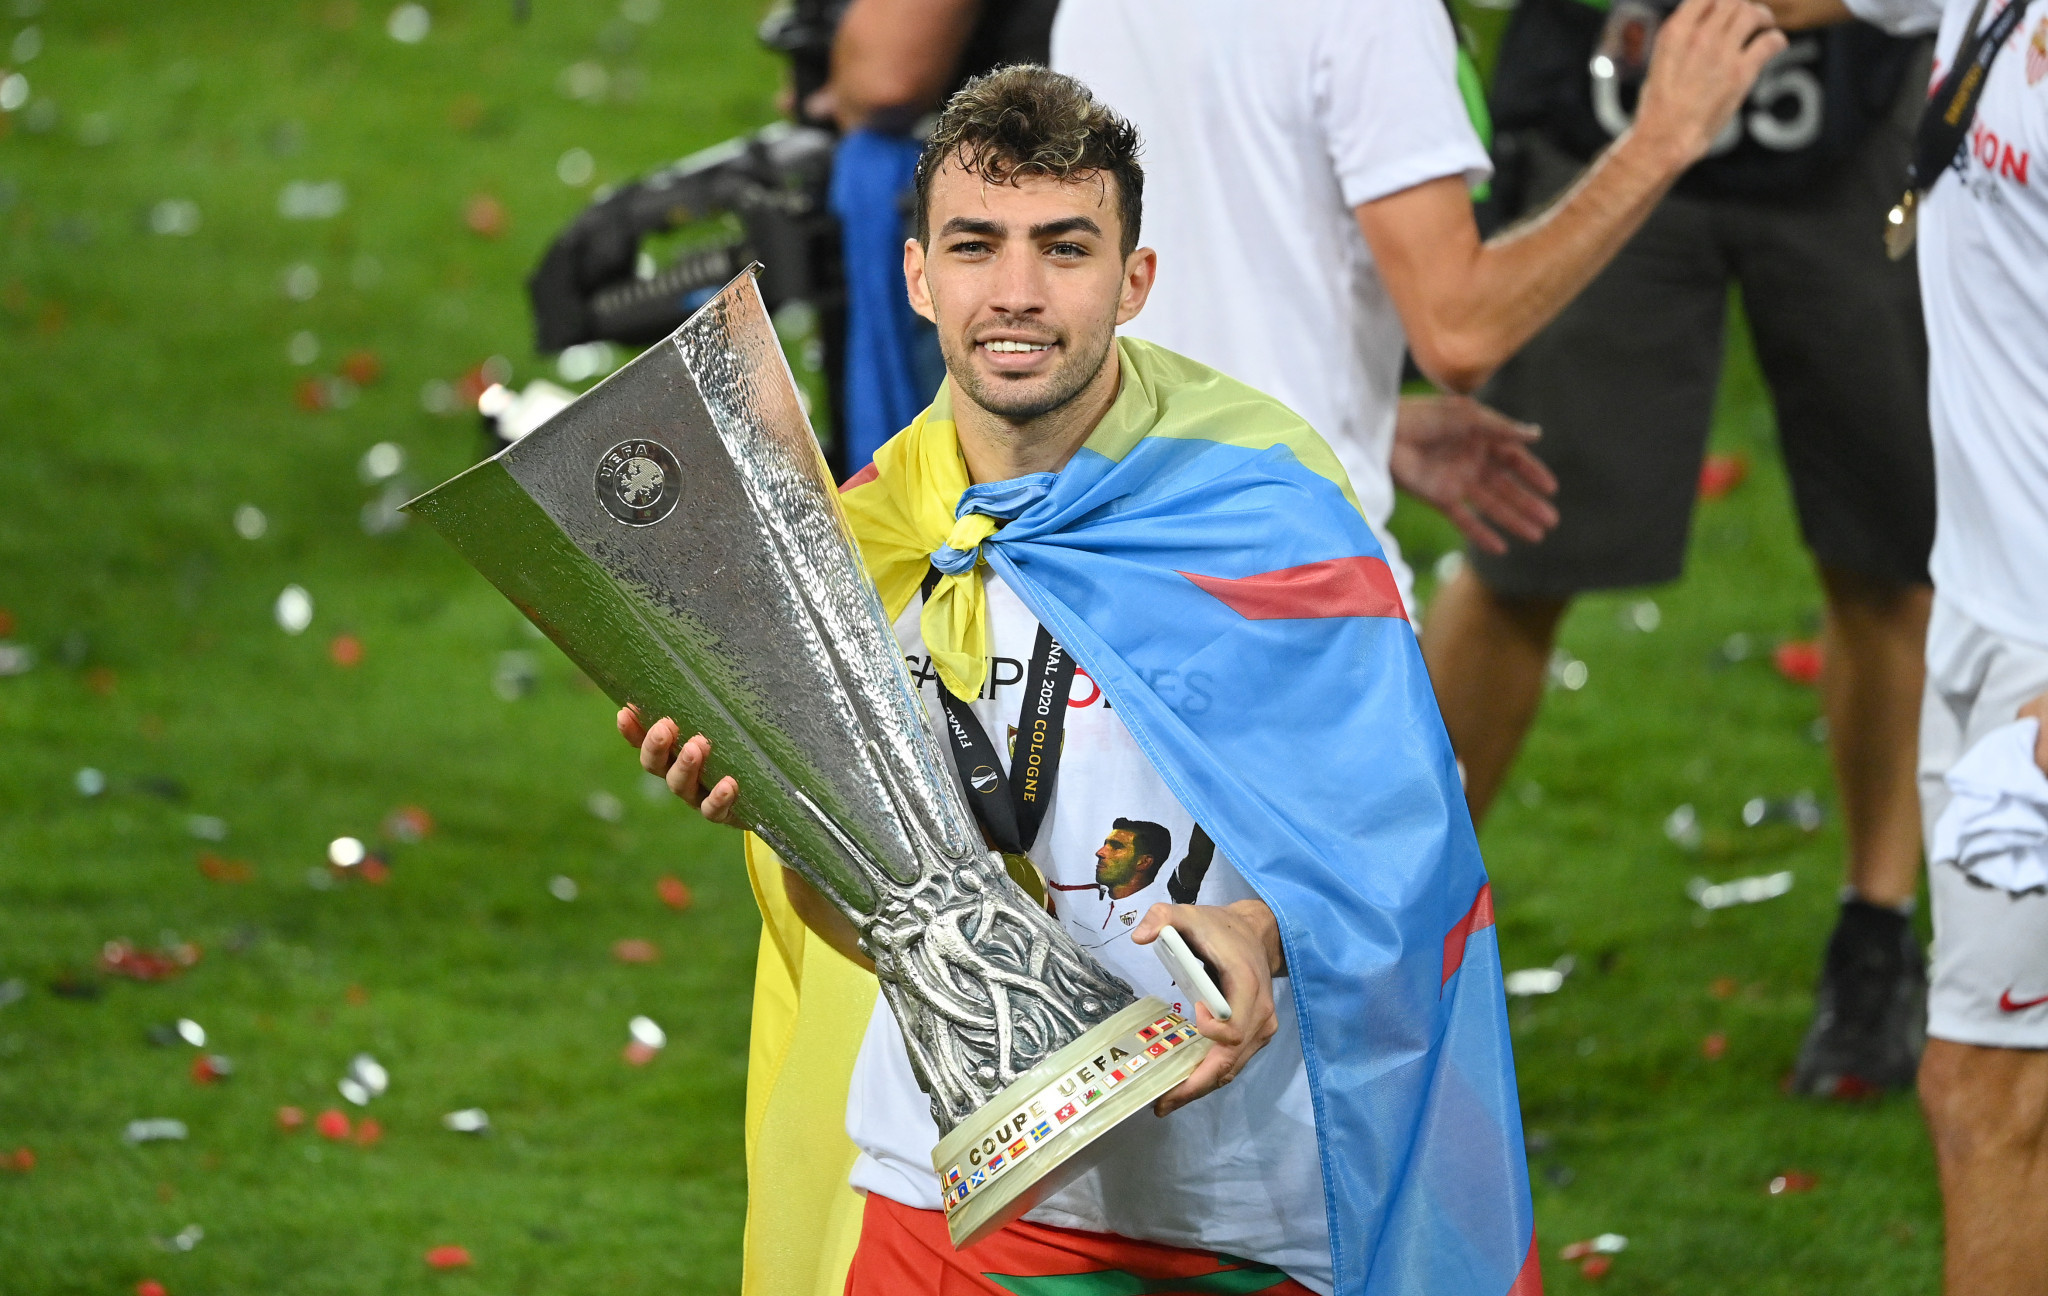 Munir El Haddadi potentially could be permitted to switch nationality from Spain to Morocco under new eligibility rules ©Getty Images